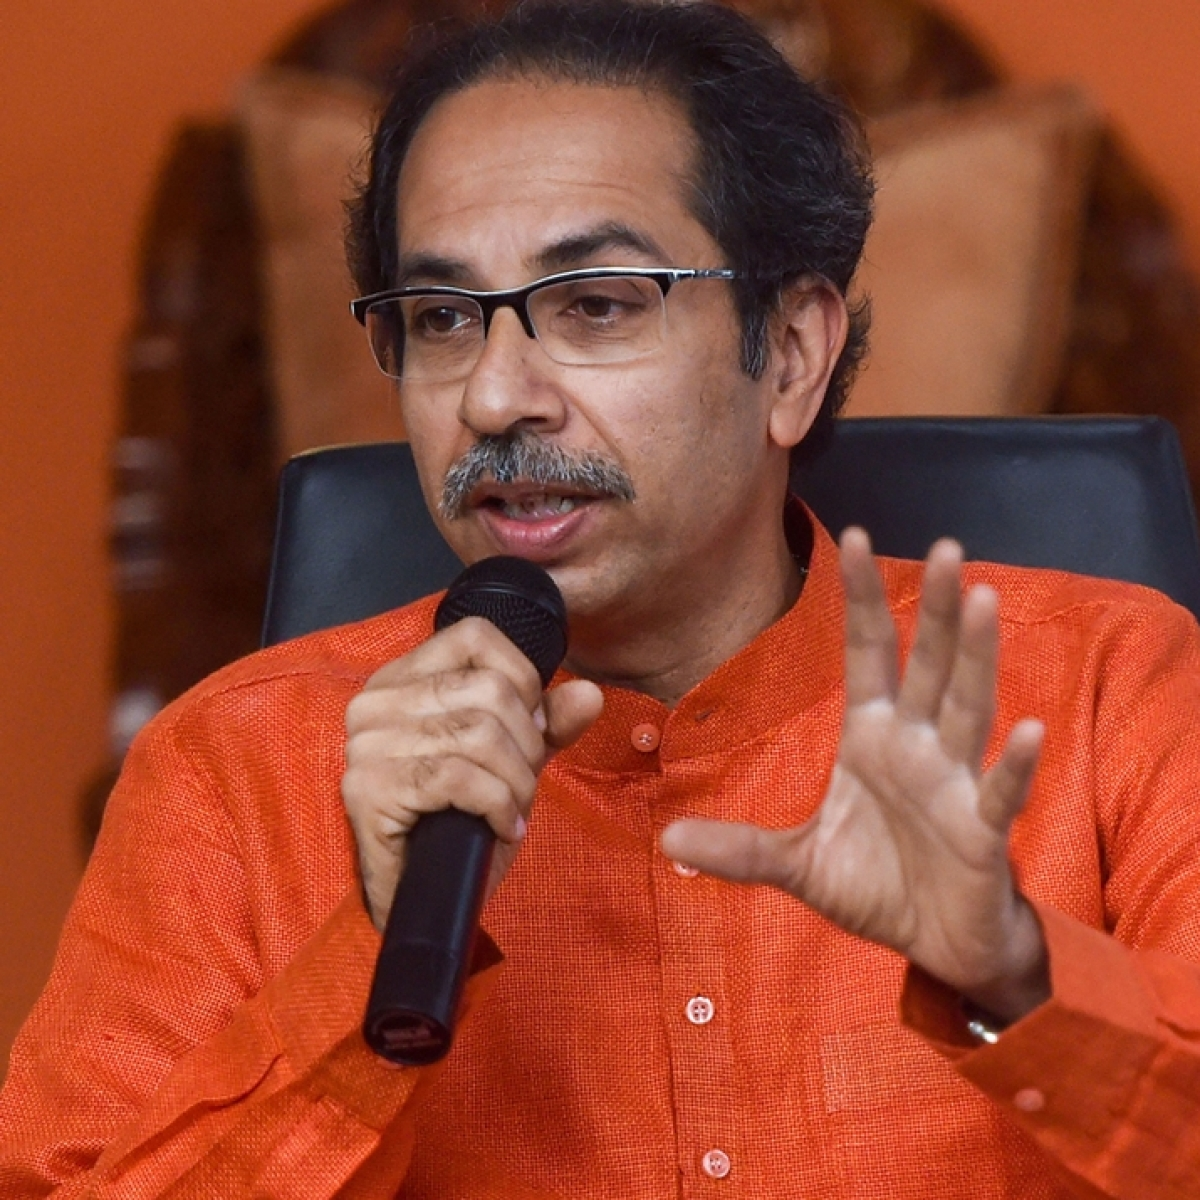 President's rule in Maha 'scripted act', alleges Shiv Sena